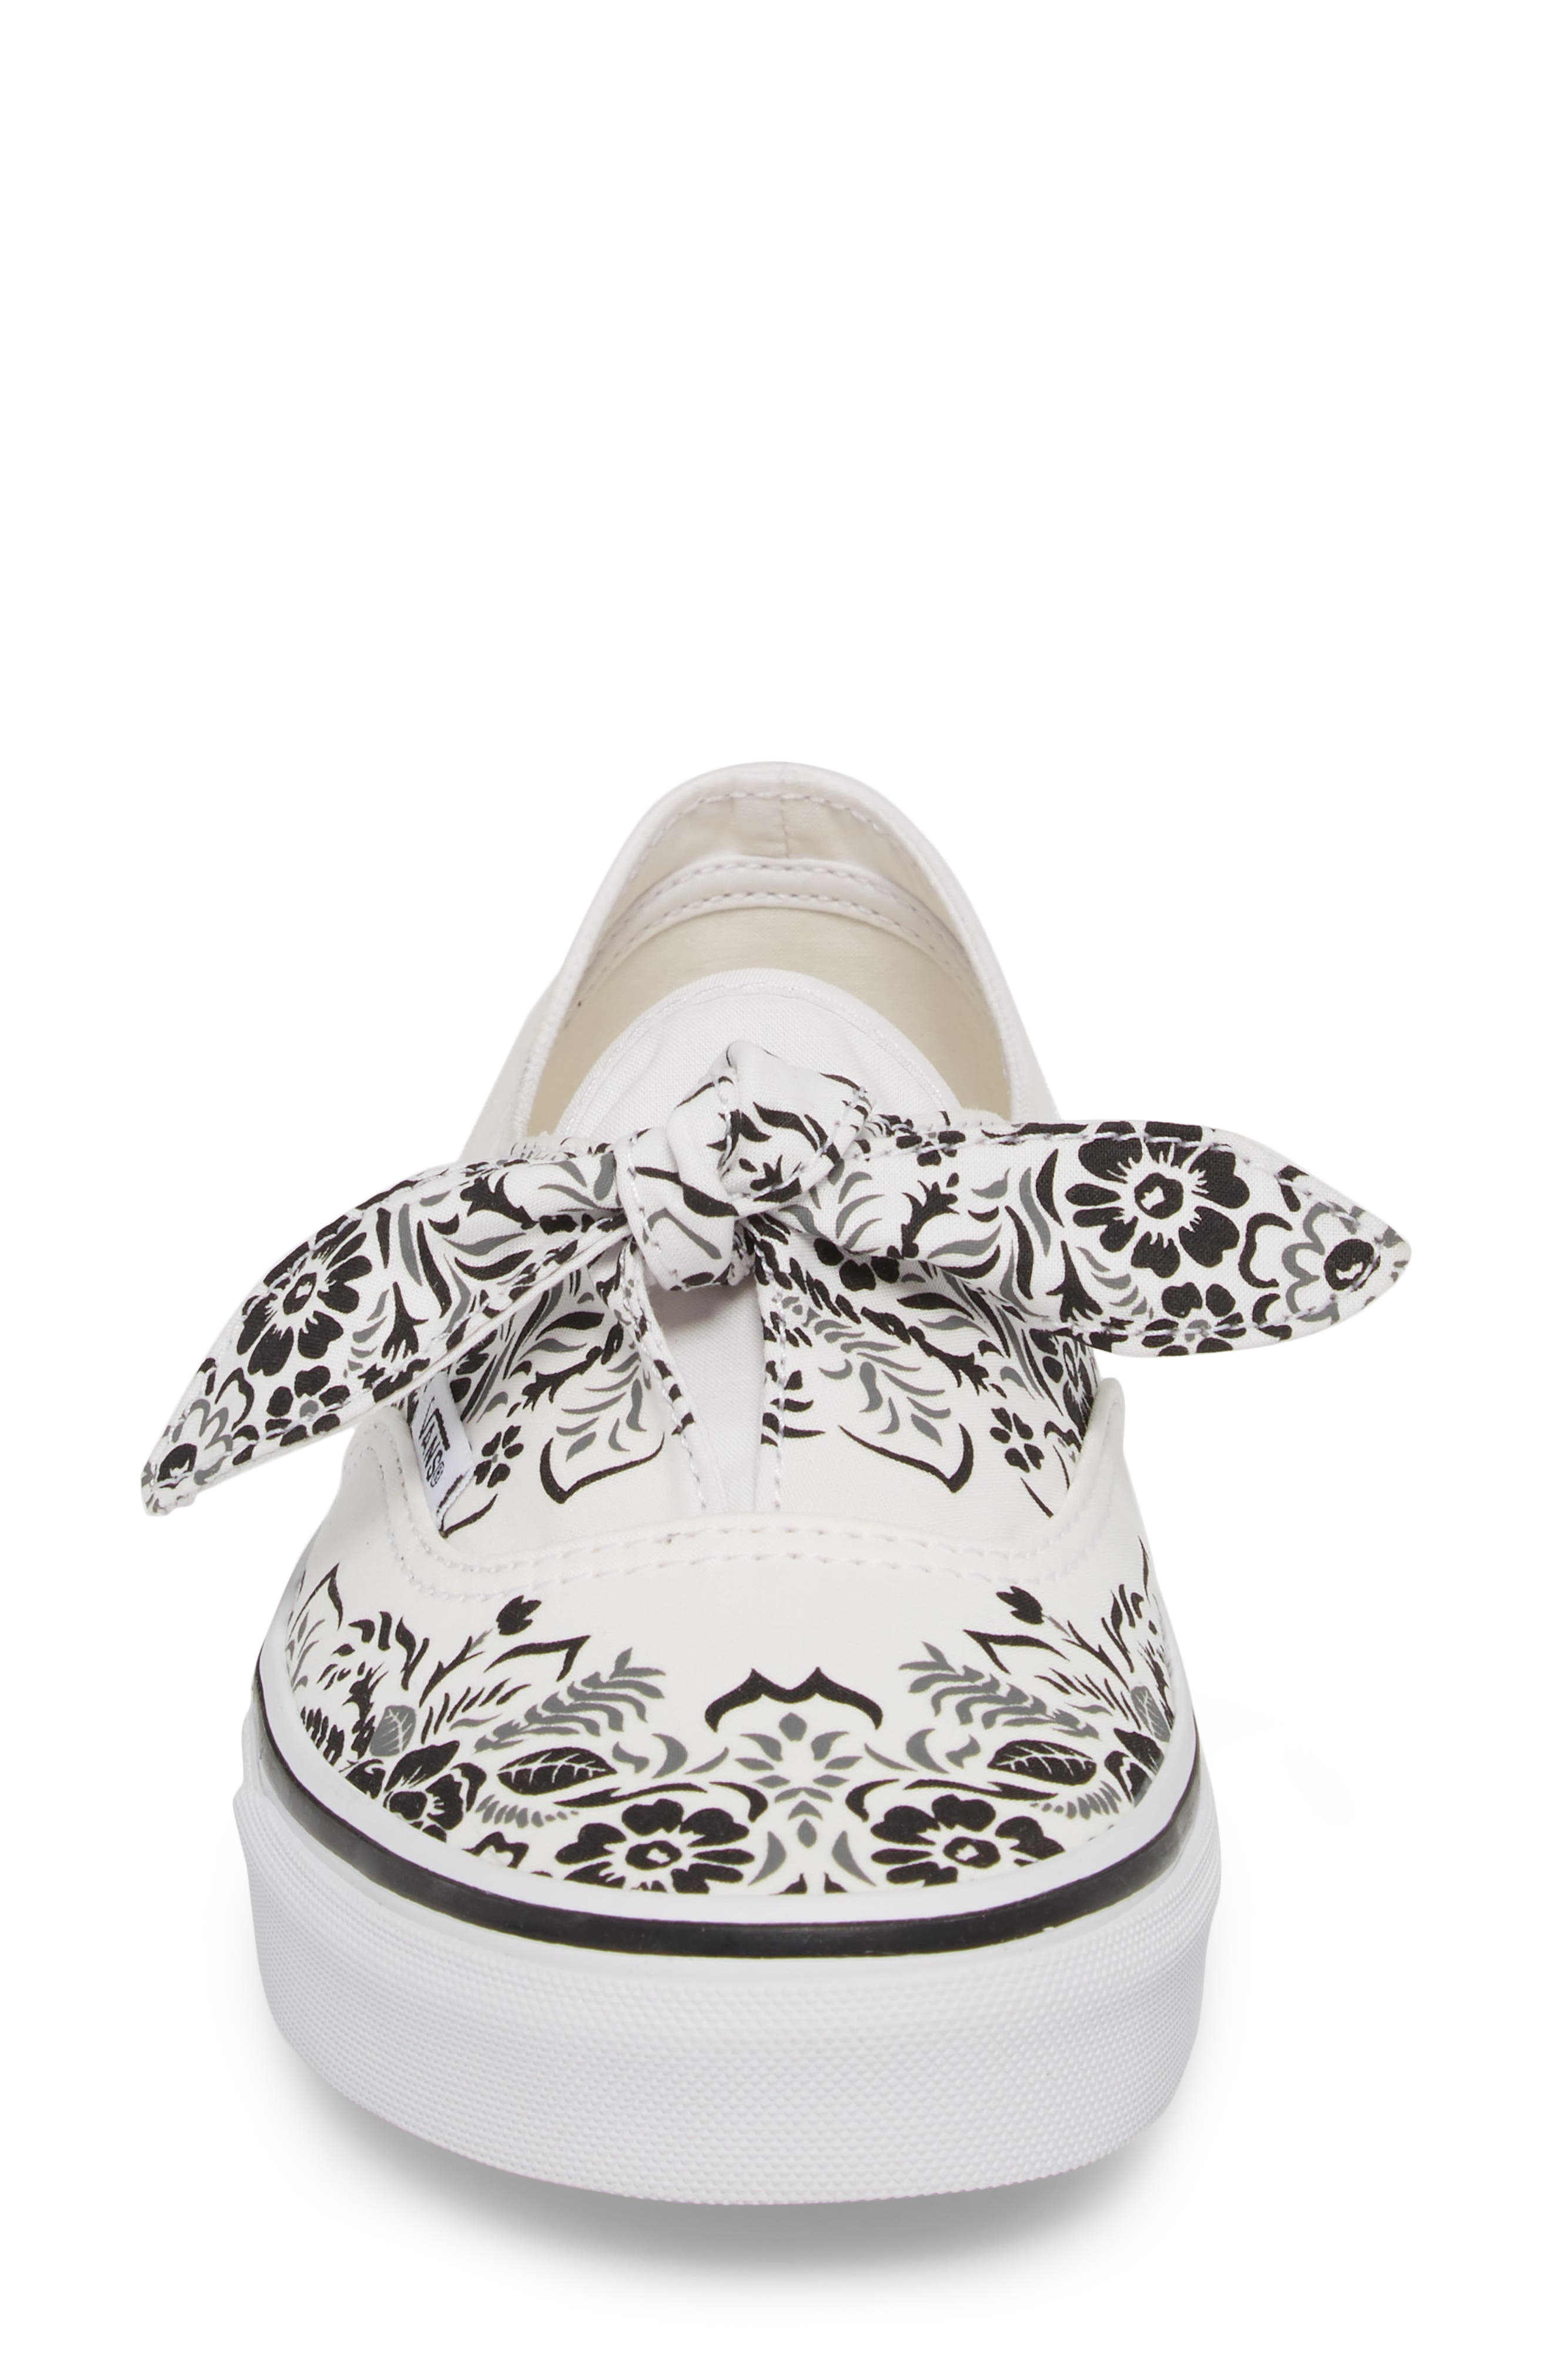 UA Authentic Knotted Floral Bandana Slip-On Sneaker,                             Alternate thumbnail 6, color,                             Marshmallow